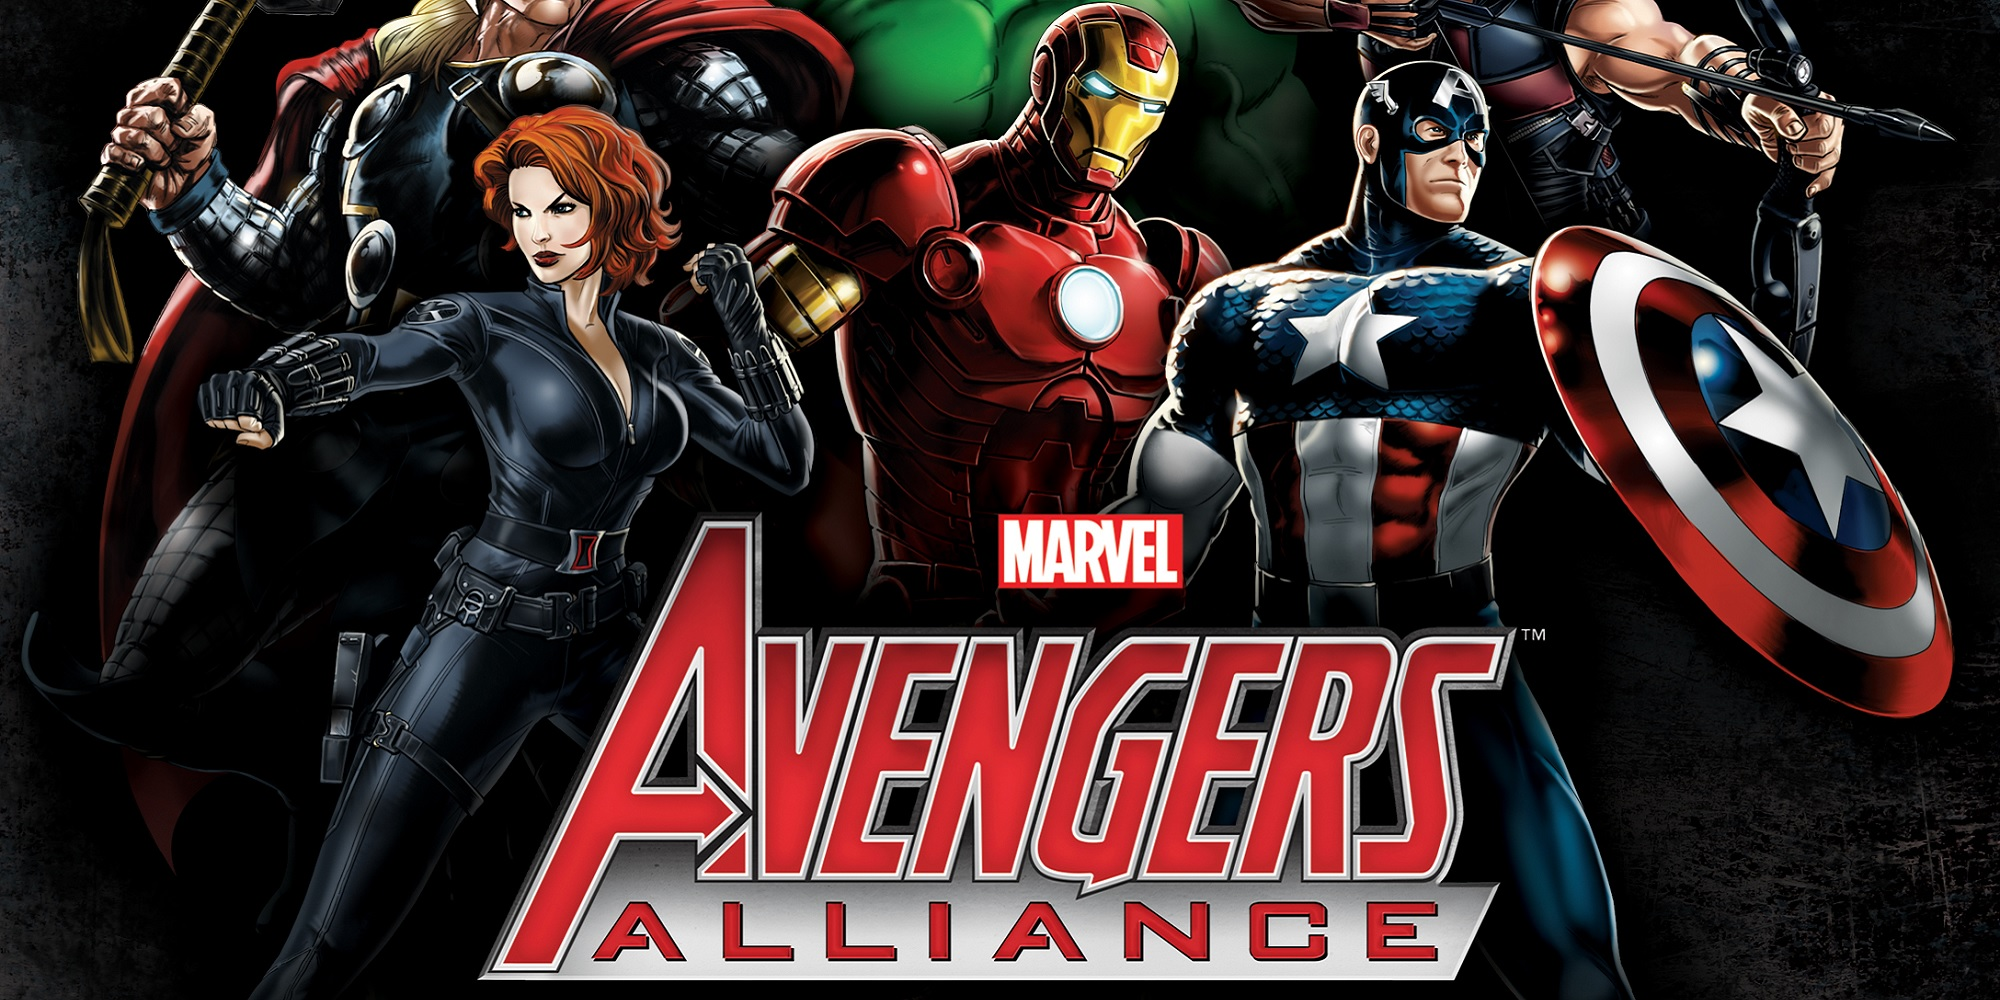 Marvel: Avengers Alliance Facebook Games to Shut Down